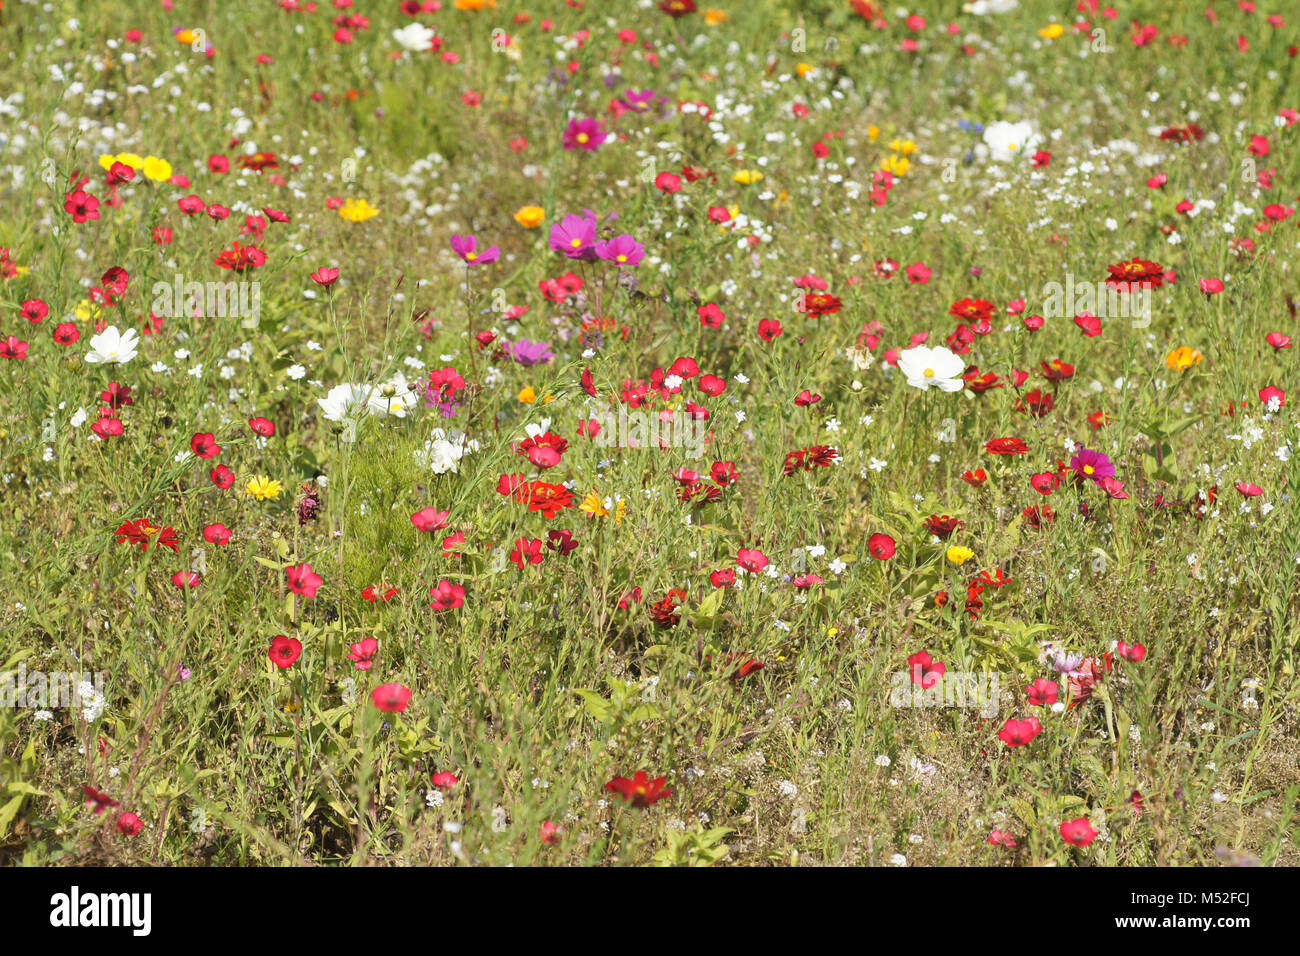 Linum grandiflorum, red flax - Stock Image